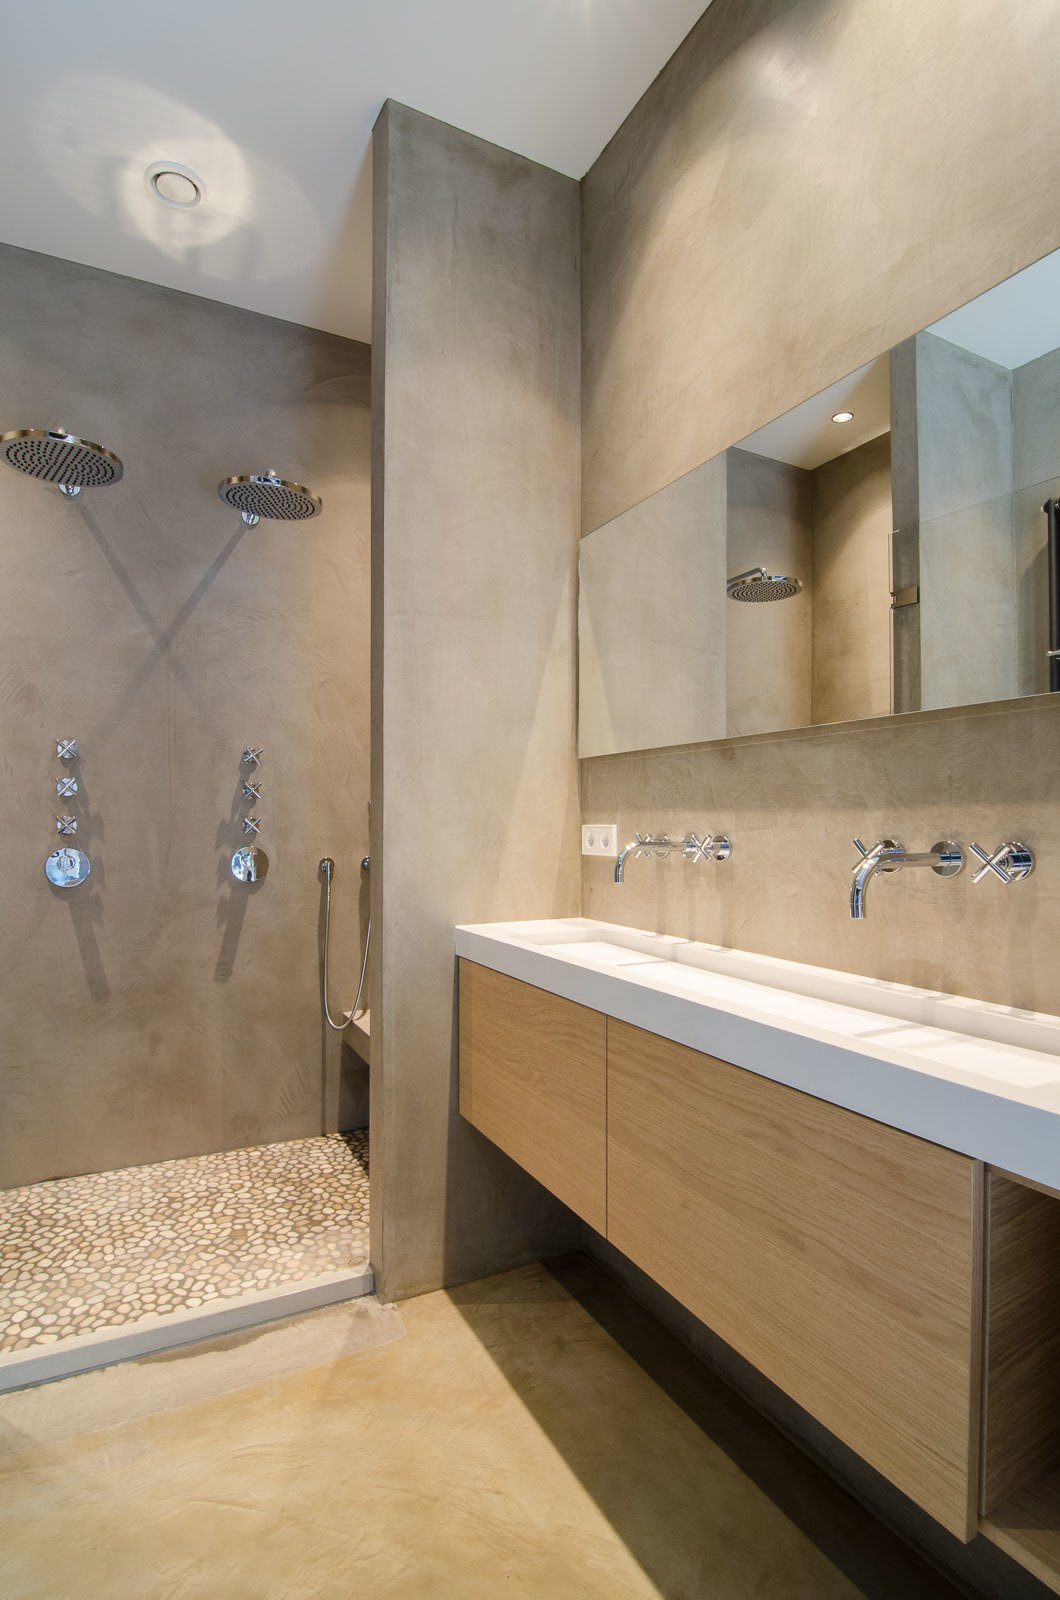 Adjacent to the bedroom, the bathroom features microcement-coated walls, along with a custom sink and vanity. Dornbracht Tara sink faucets and dual rainfall showerheads finish the space.  Bathroom from Bloemgracht